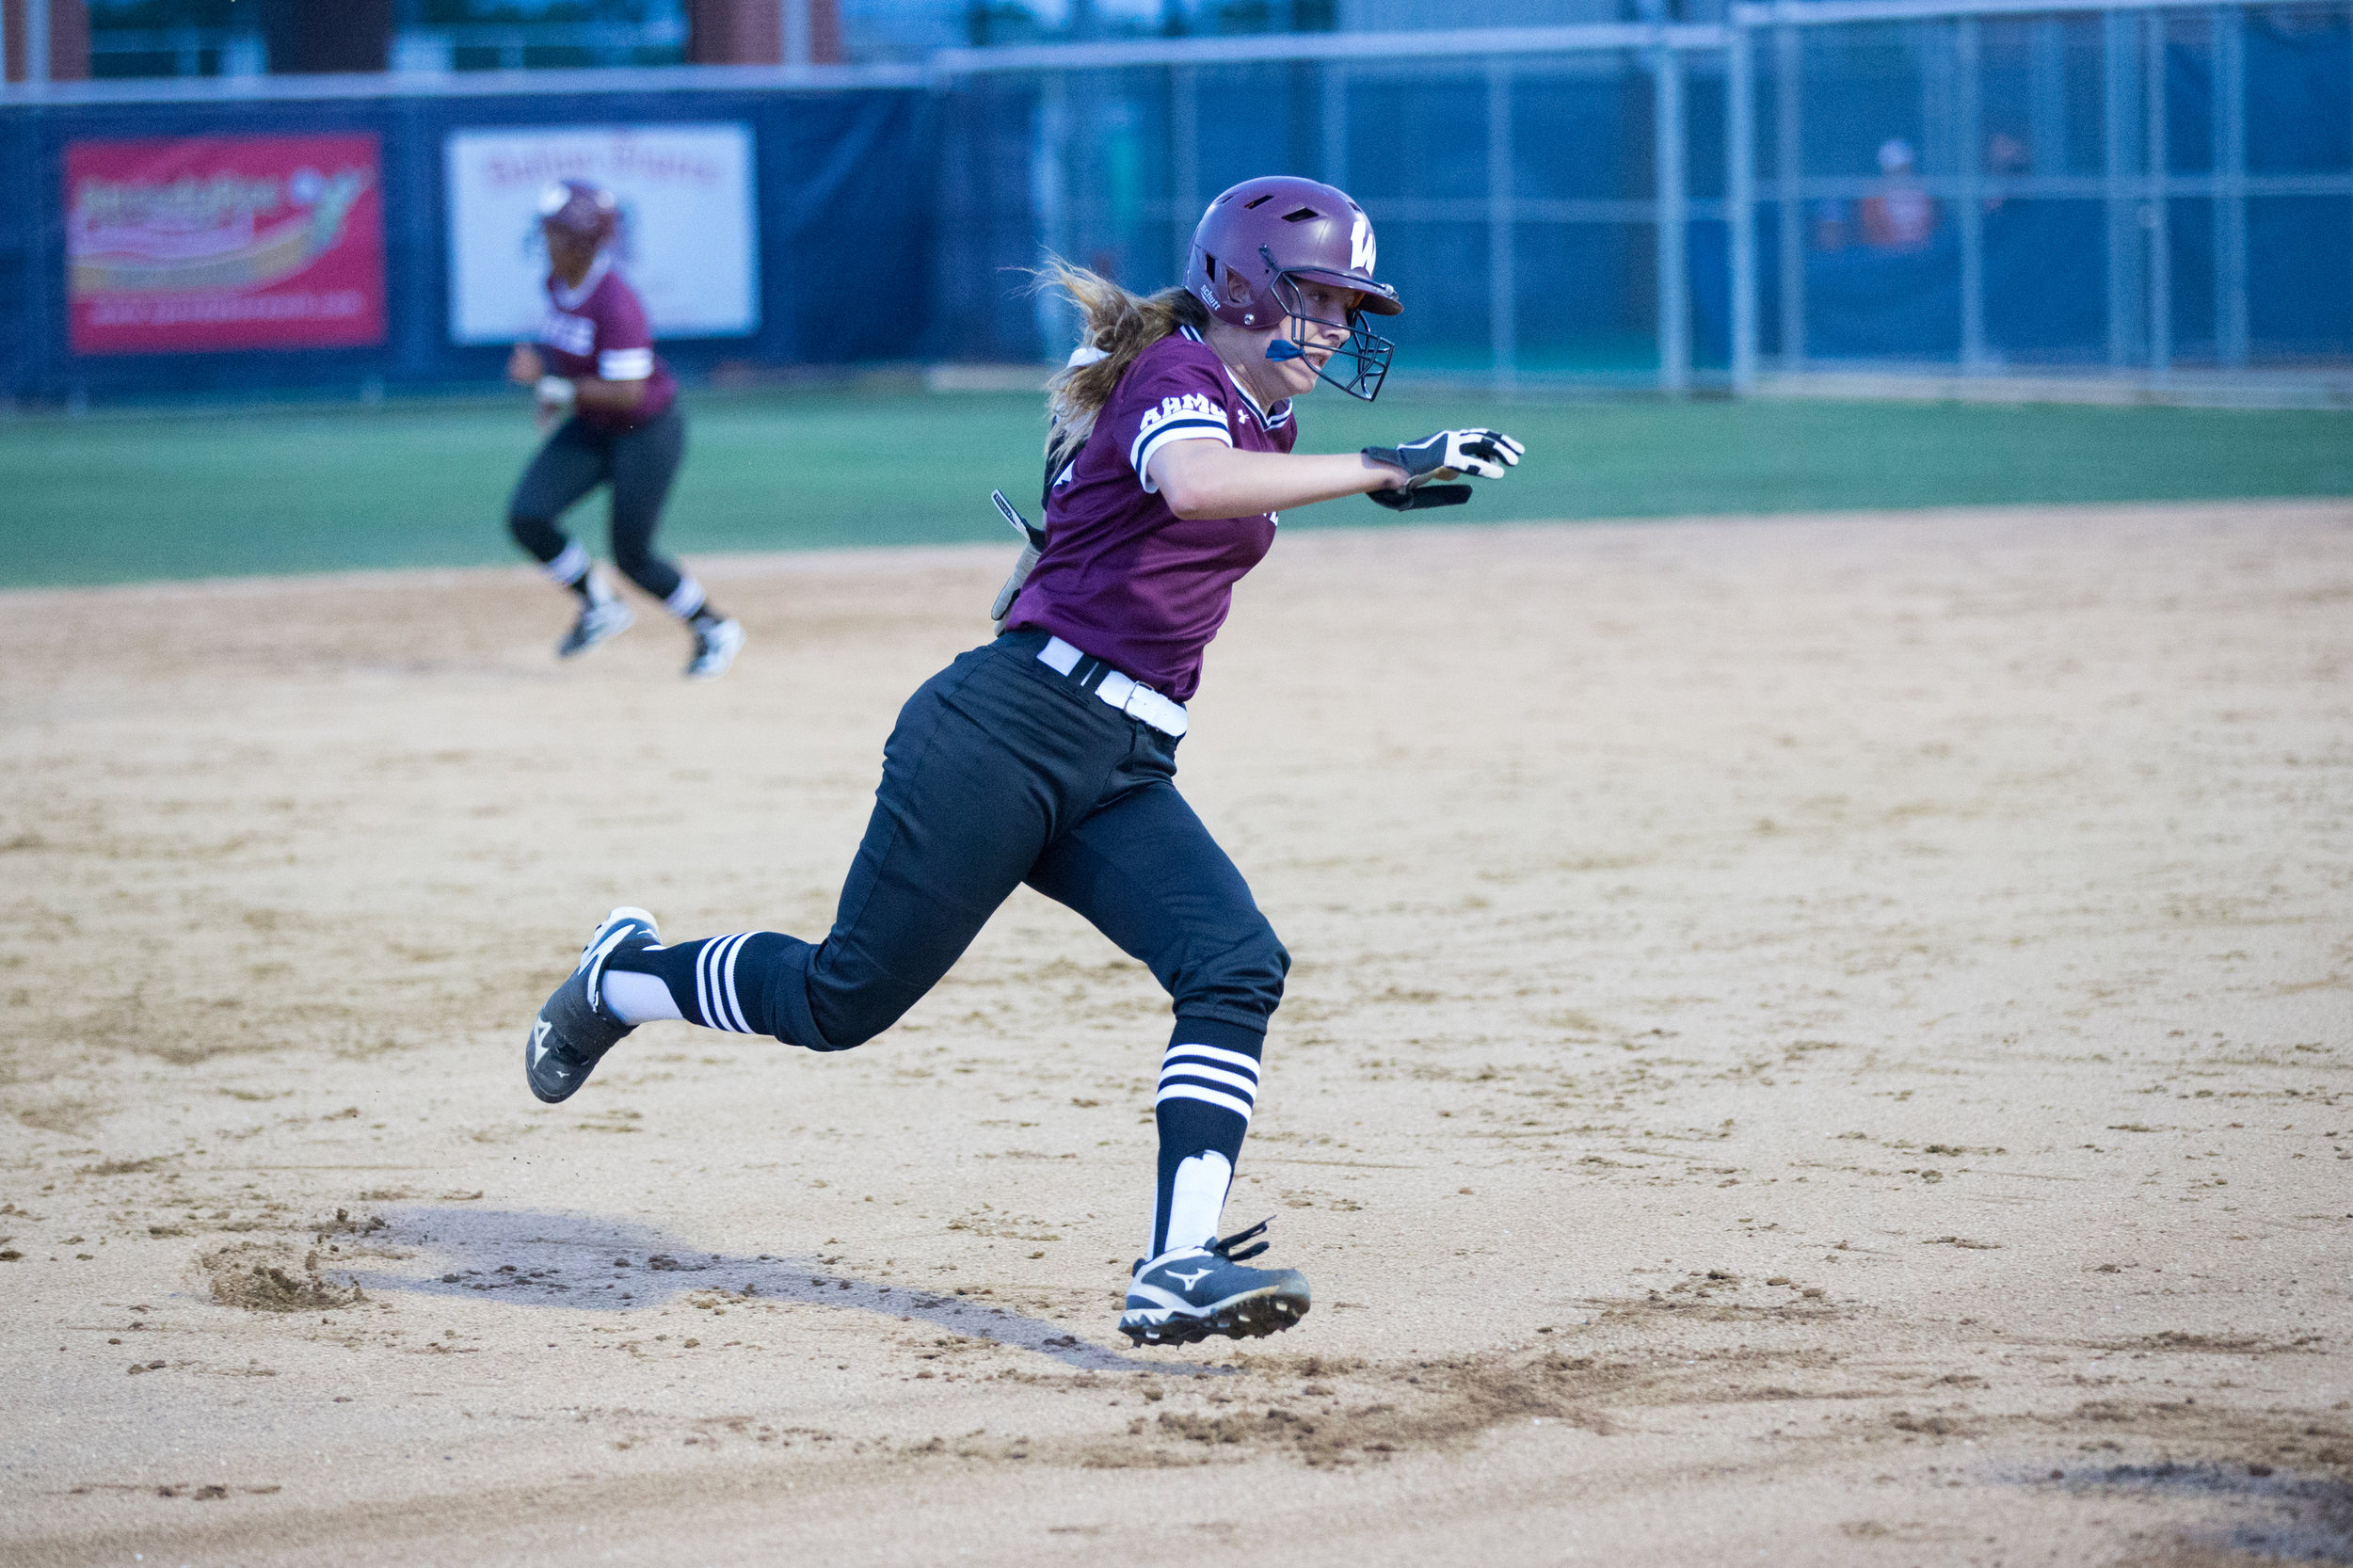 5_18 Wylie Softball-164.jpg